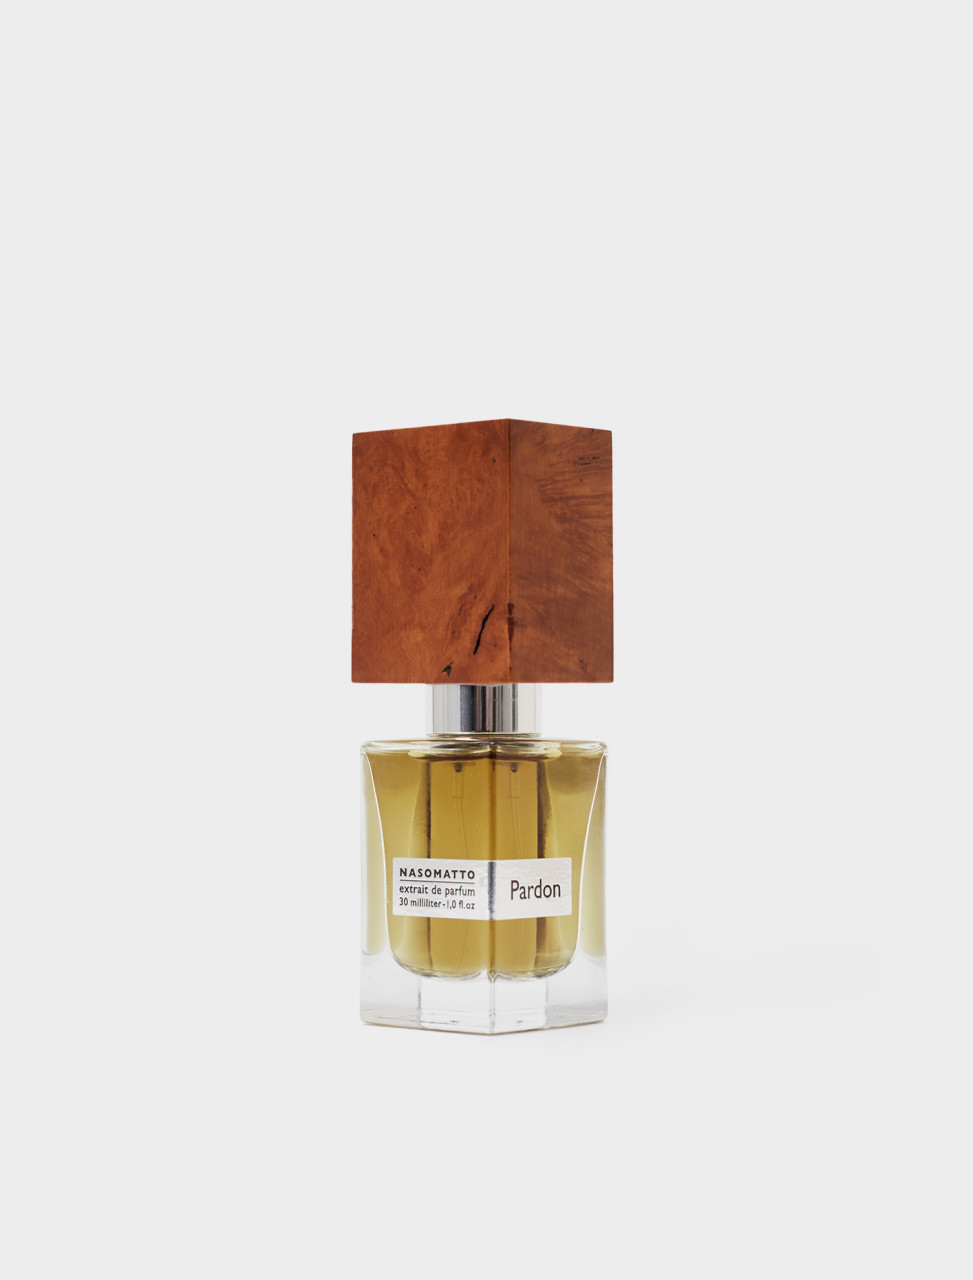 Pardon by Nasomatto is to evoke the persuasion of the utmost masculine elegance and charm.